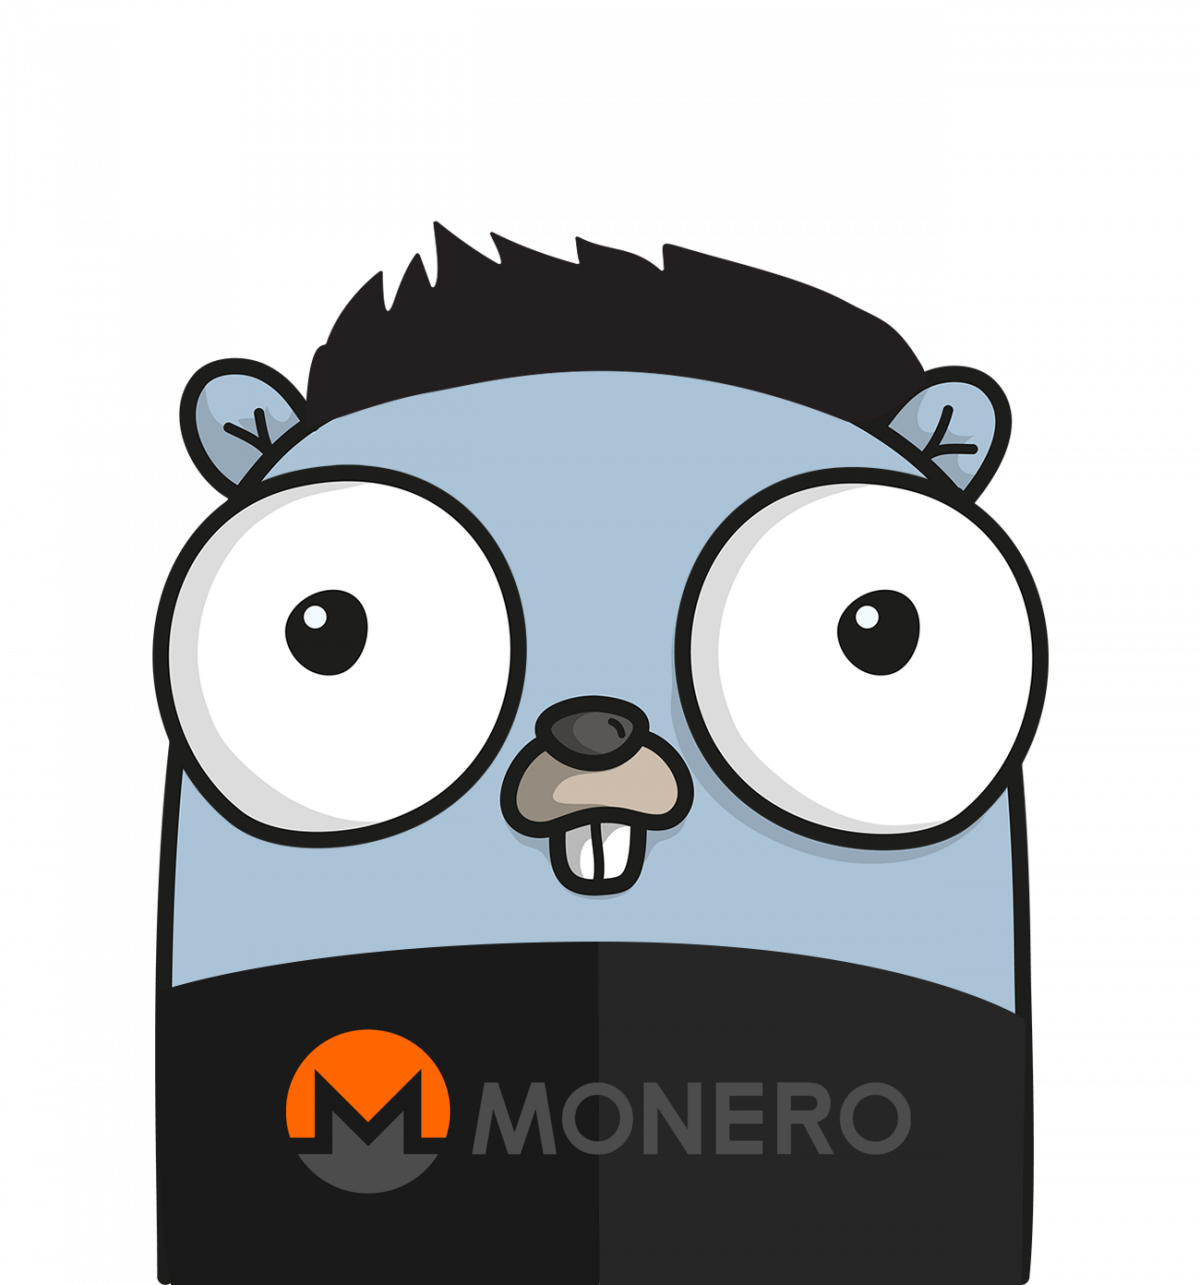 Monero Gopher